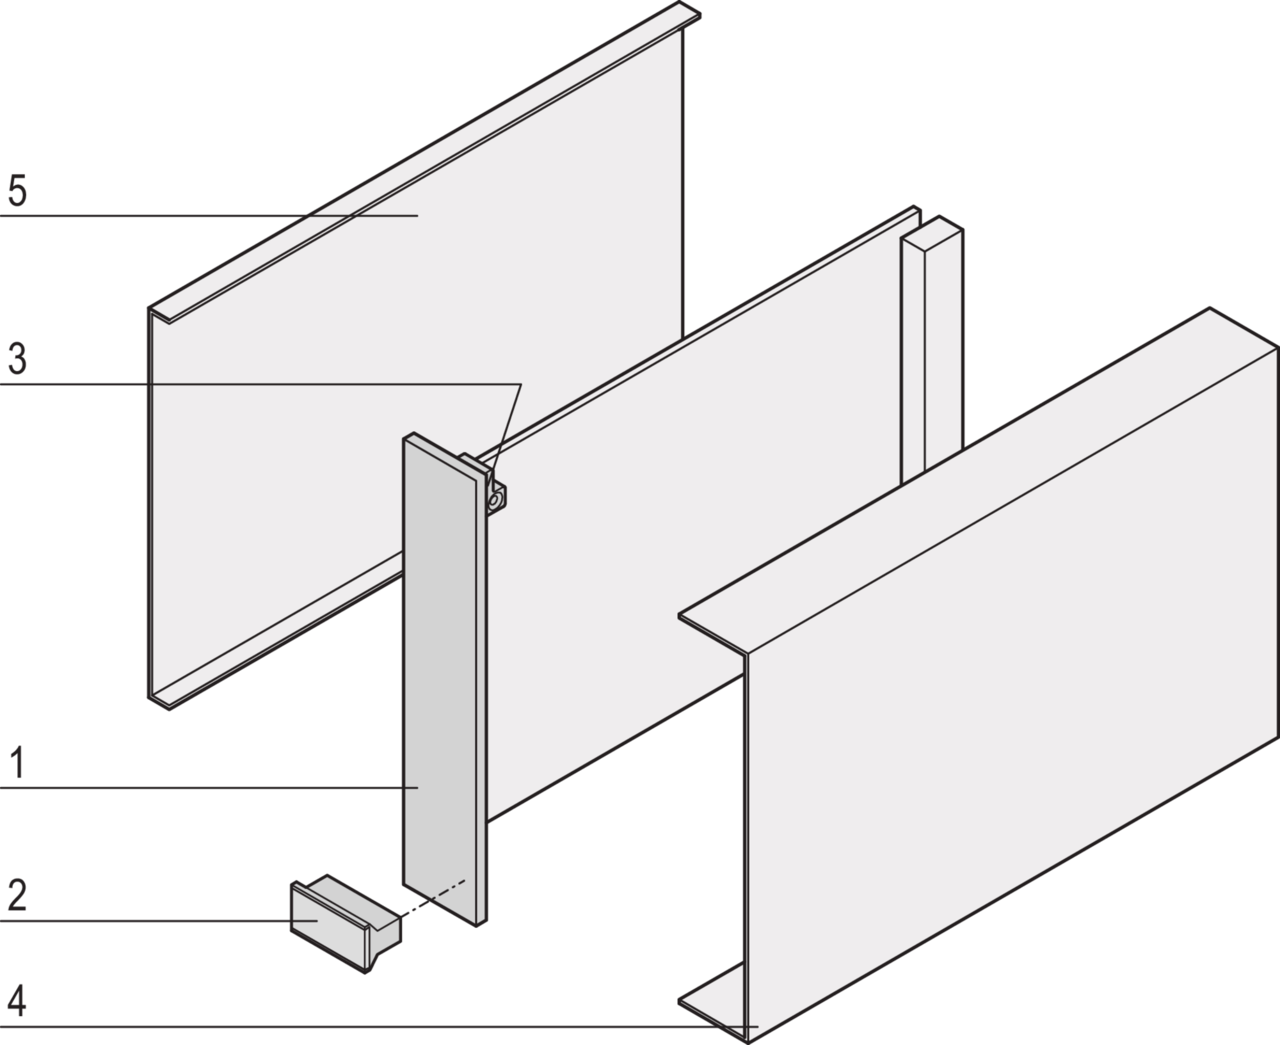 Image for Plug in unit, front anodized, rear passivated, unshielded, for cover on both sides, type 1 trapezoid handle from Schroff - Asia Pacific